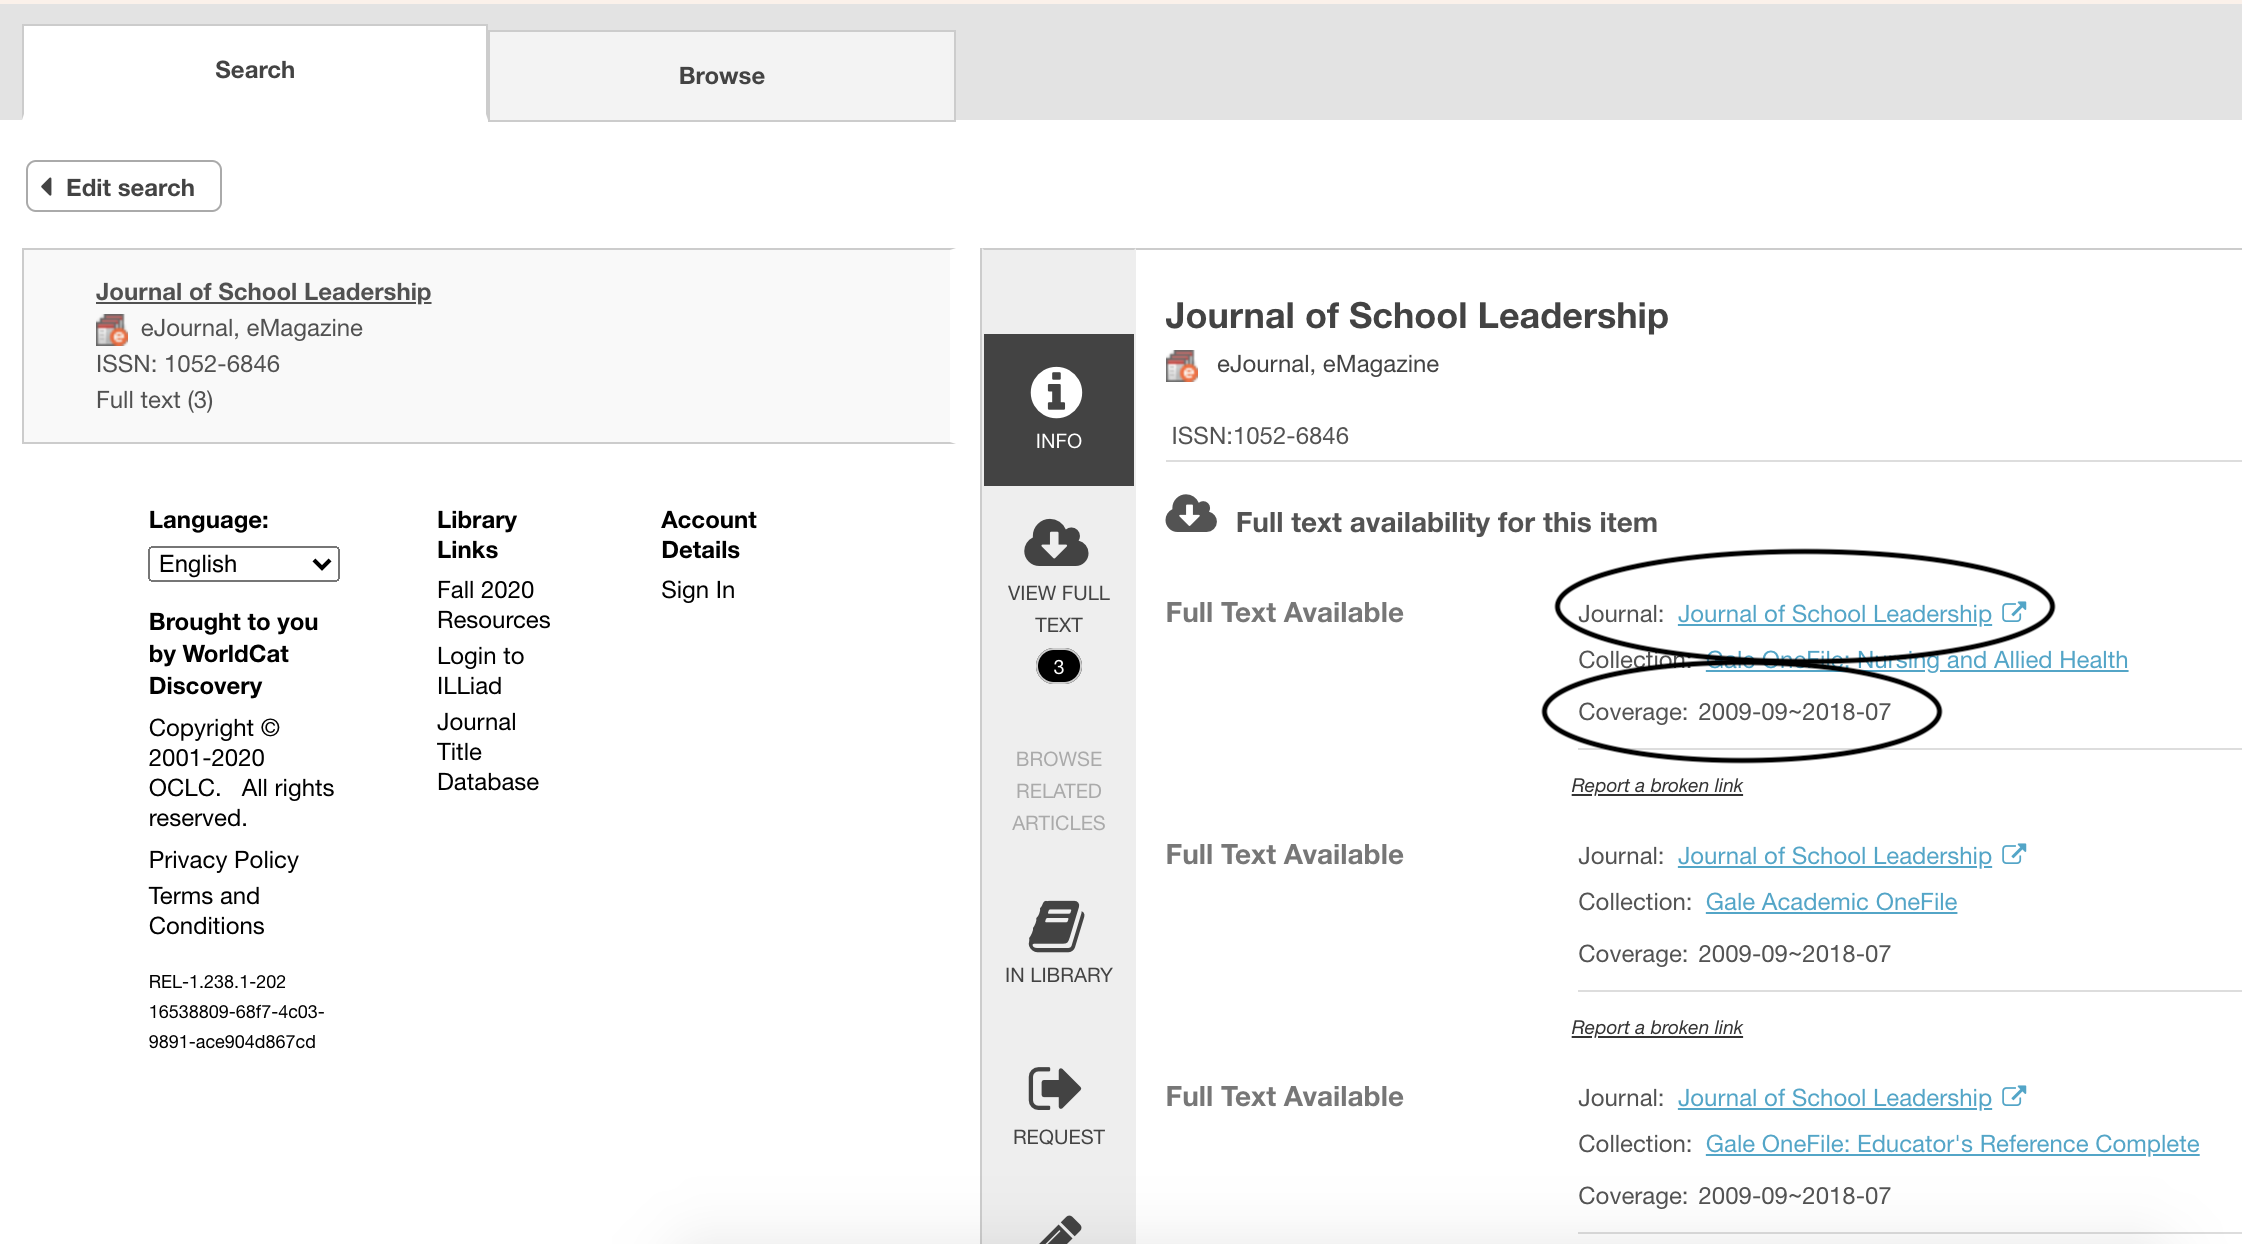 Screenshot of journal search results page